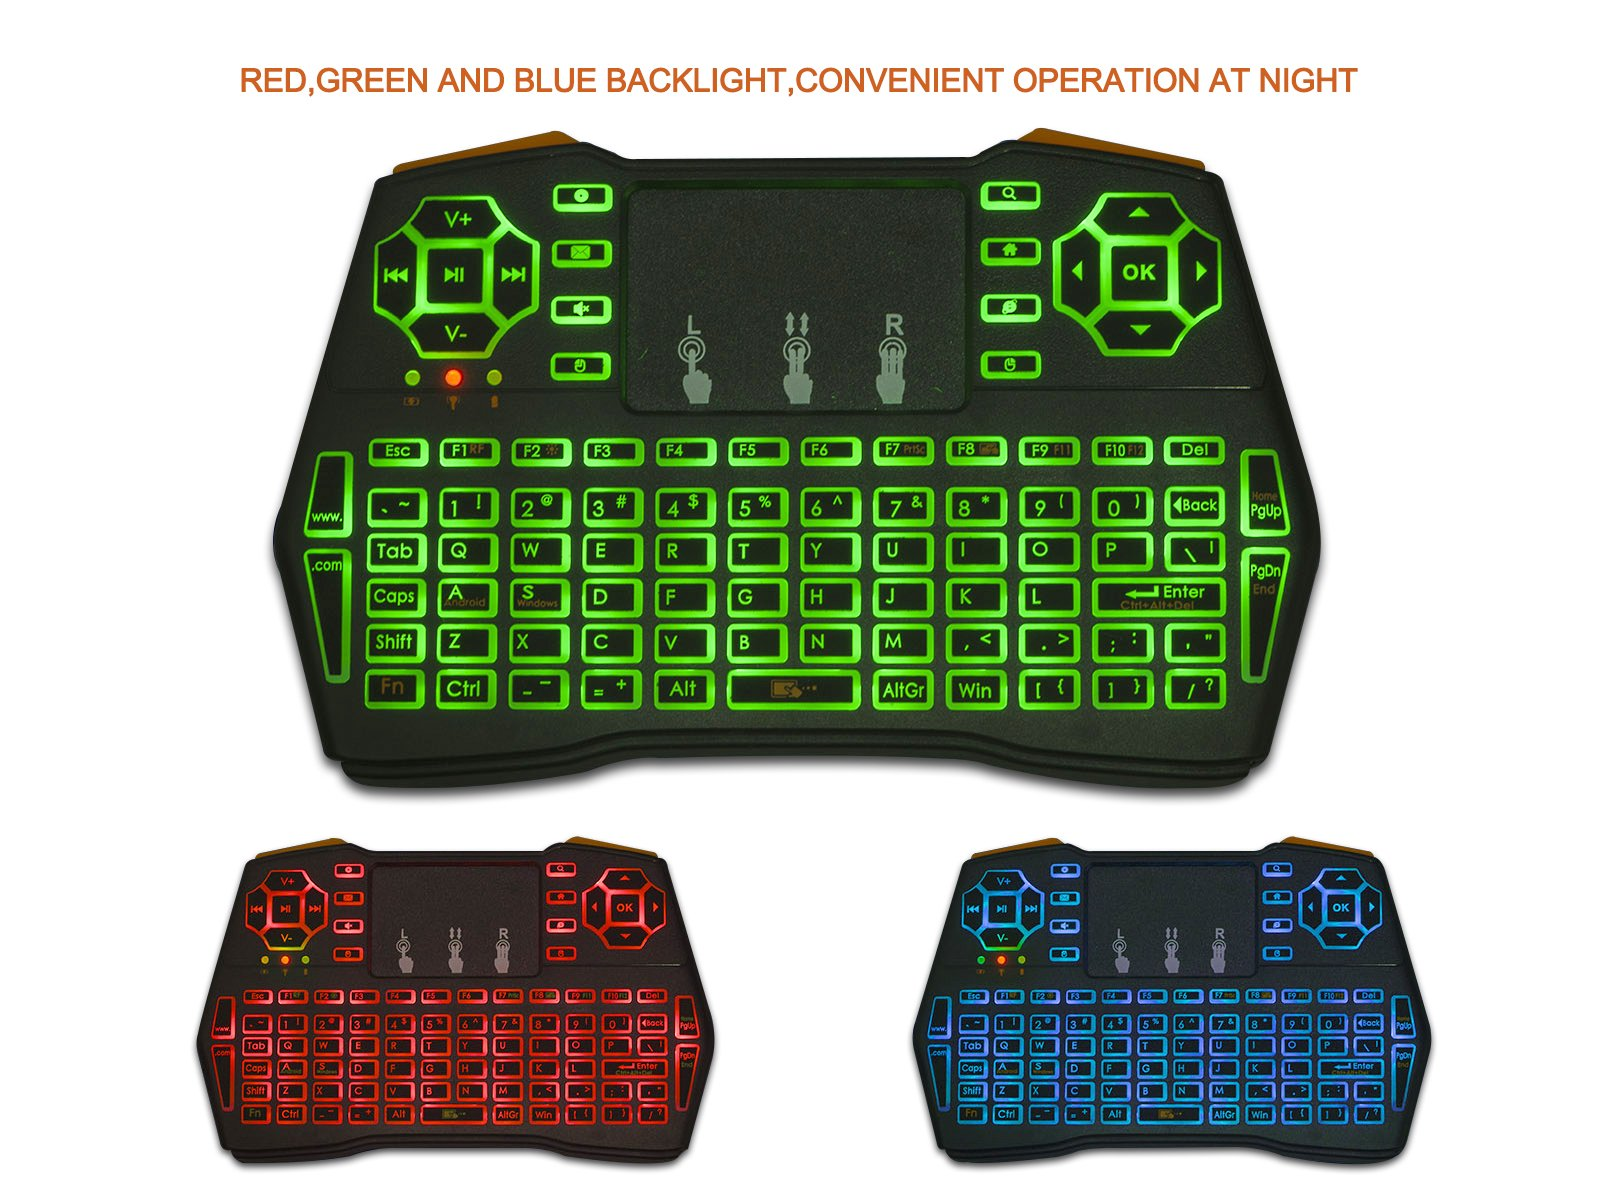 LinDon-Tech 2.4GHz Mini Wireless Keyboard with Touchpad Mouse Rechargable Air Mouse LED Backlit Handheld Remote Control Combos for PC, Google Android TV Box, Raspberry PI